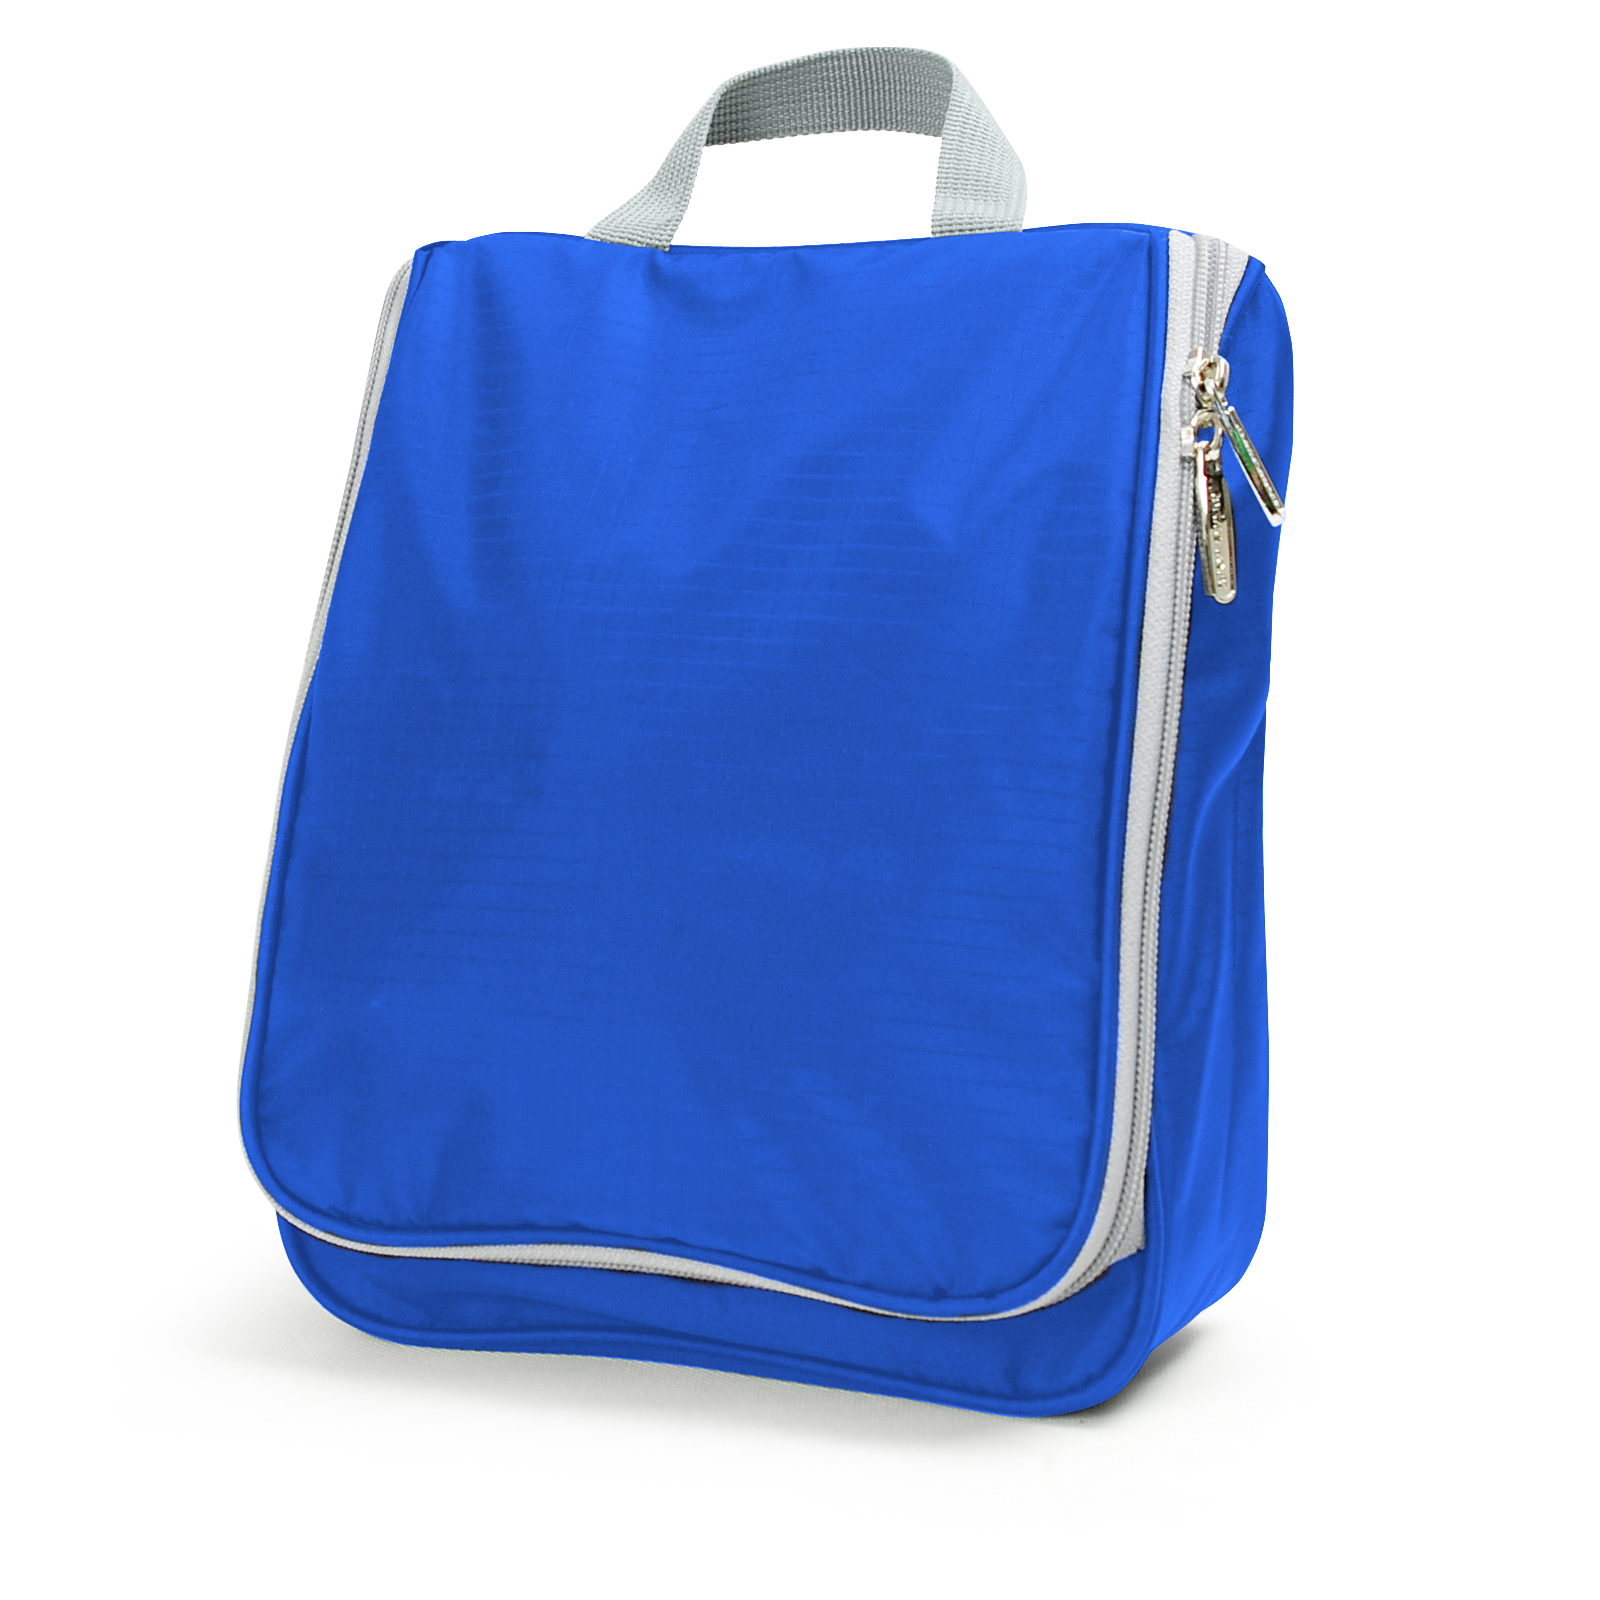 Portable Toiletry Bag - Blue